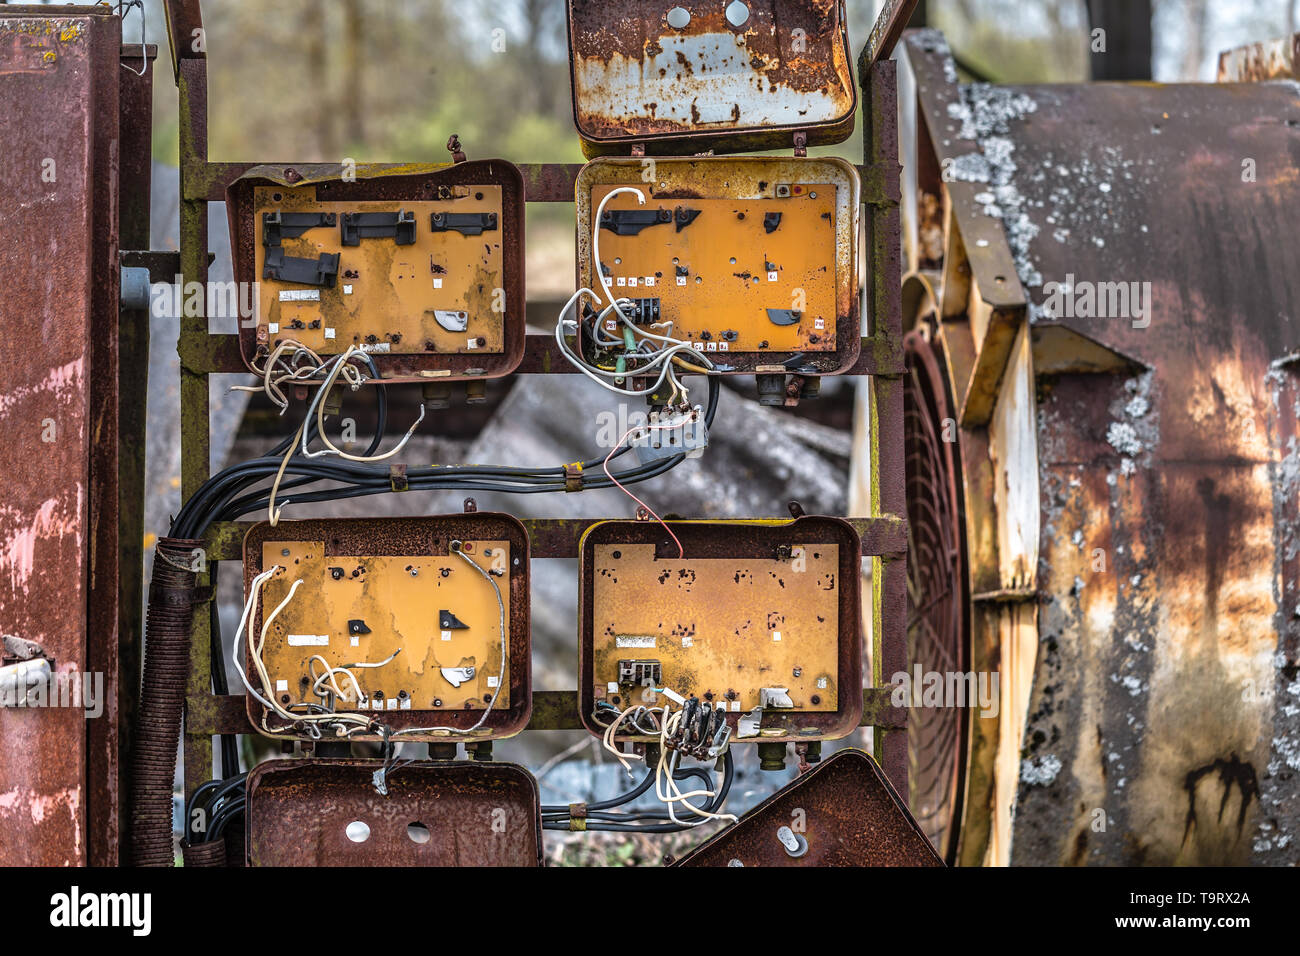 hight resolution of old rusty fuse box in an abandoned old building in belarus chernobyl exclusion zone